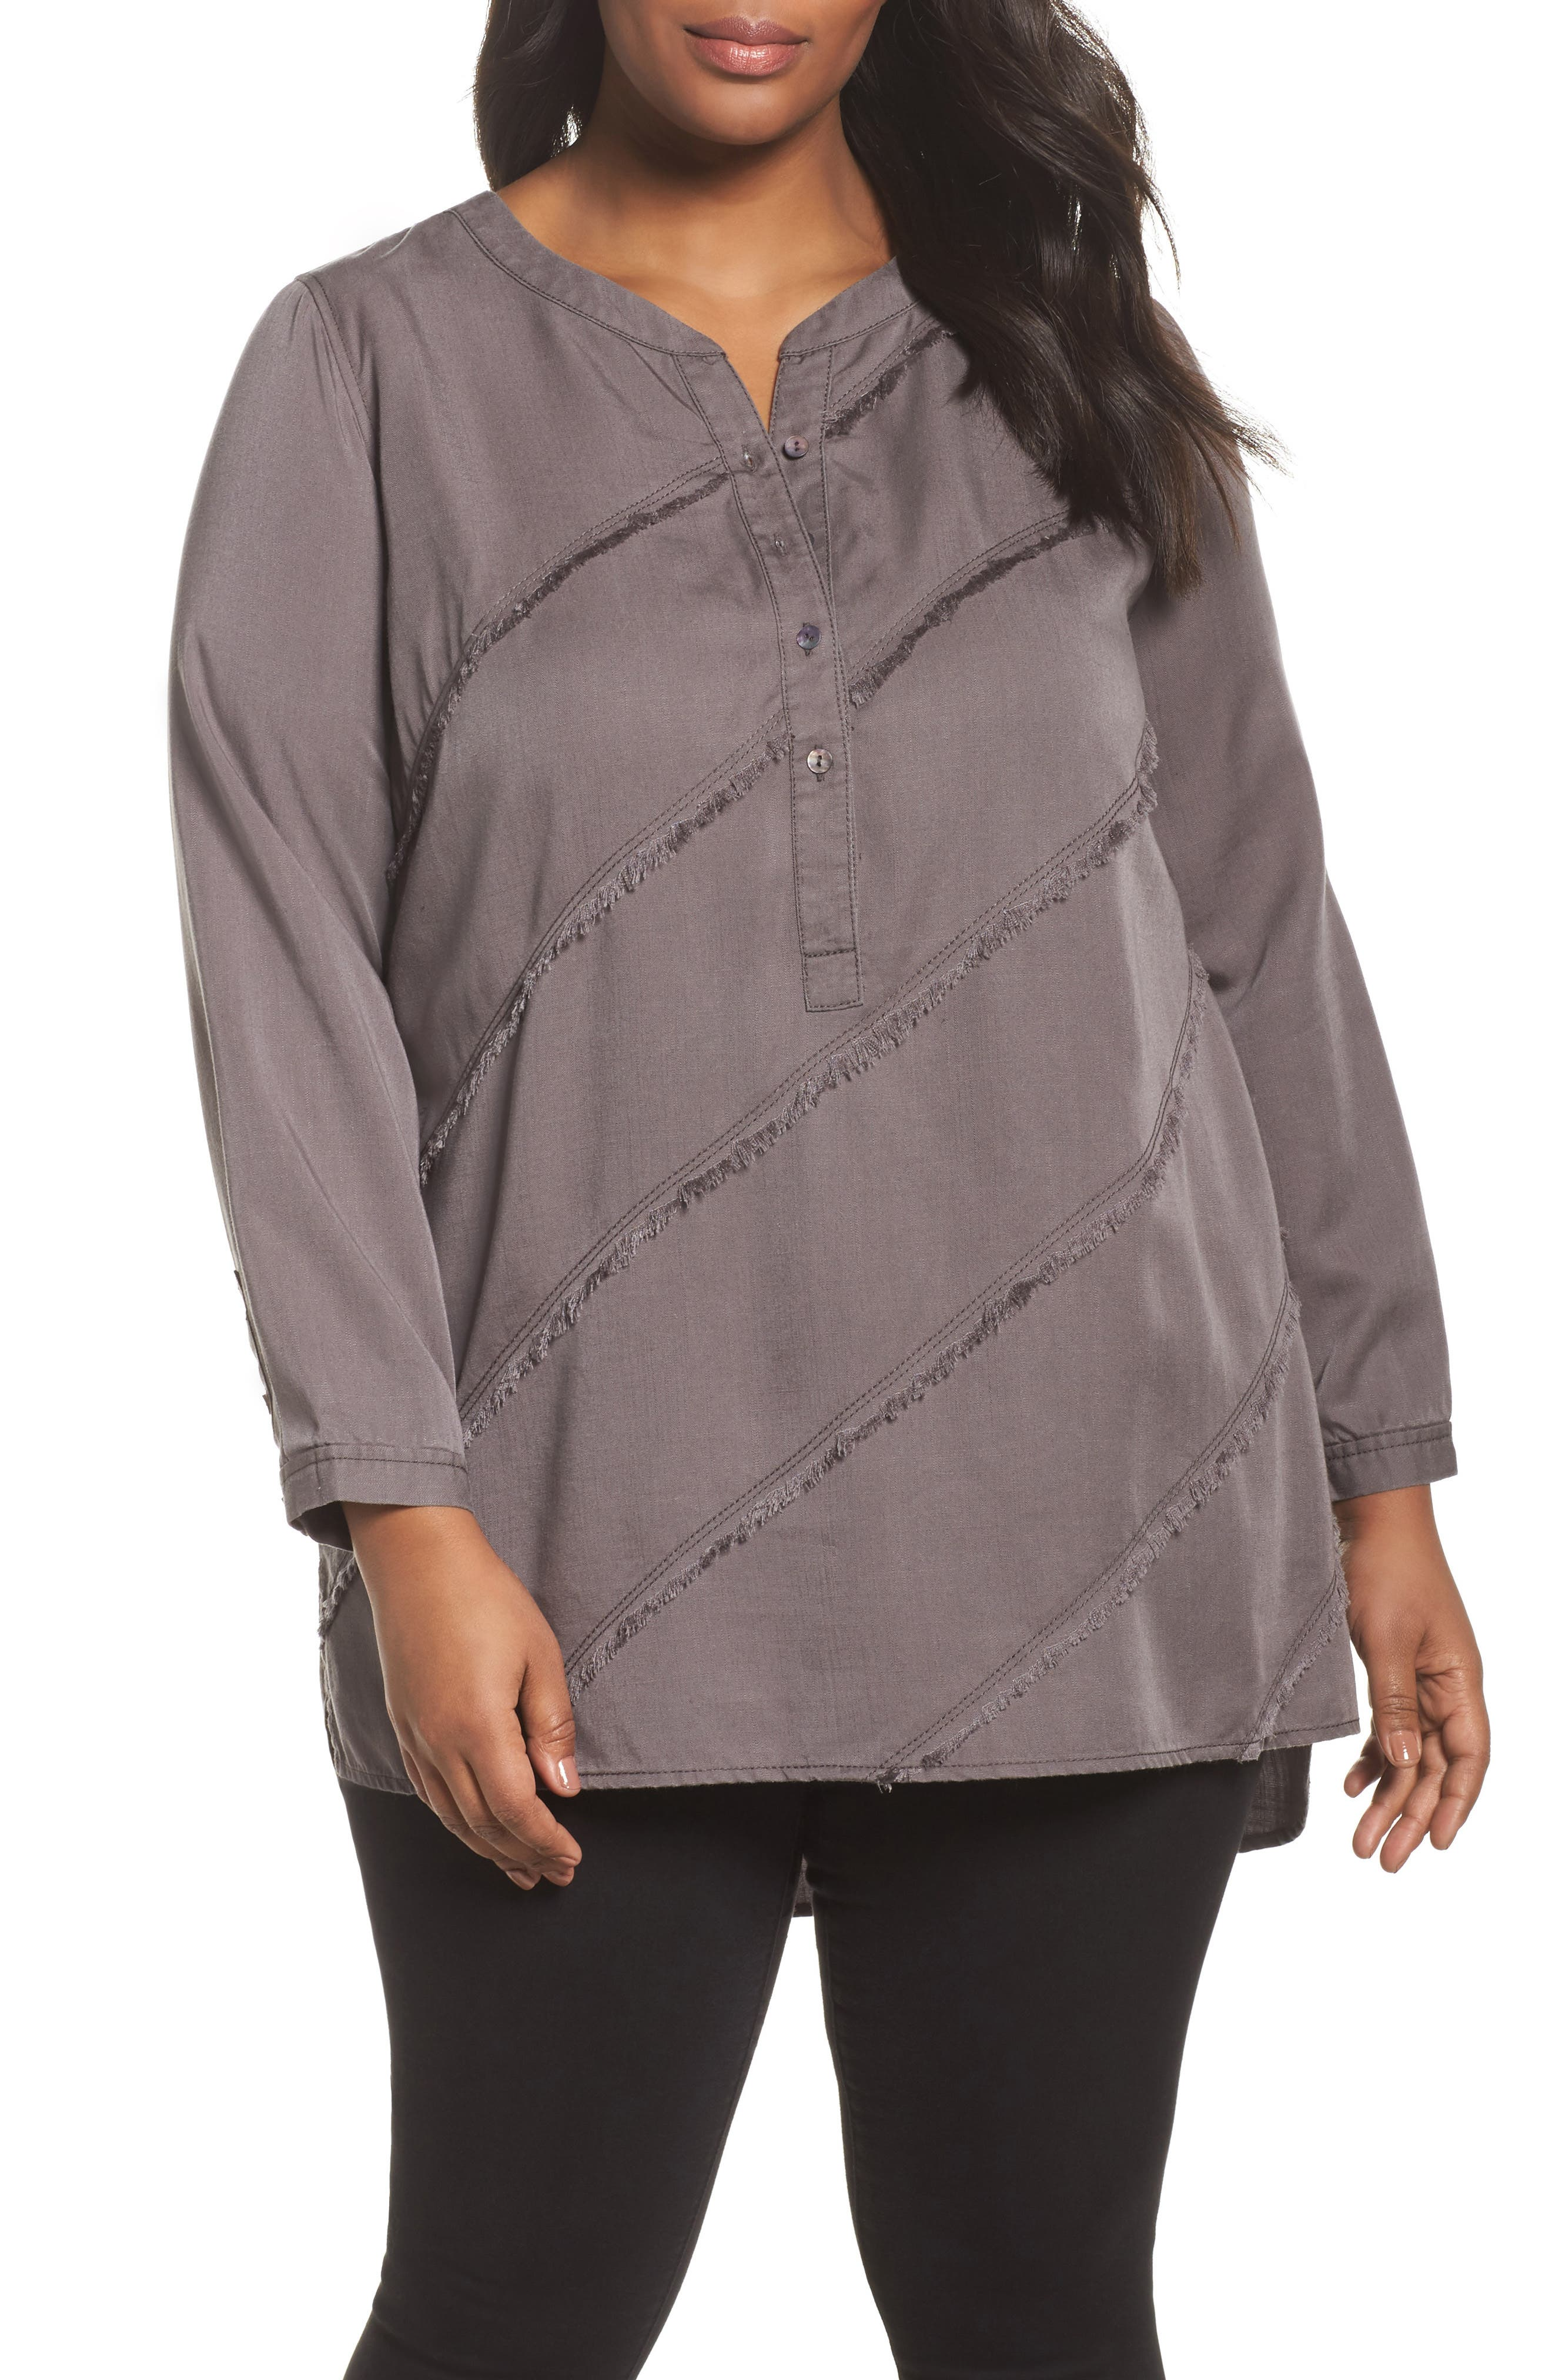 Alternate Image 1 Selected - NIC+ZOE Tranquil Tunic Top (Plus Size)